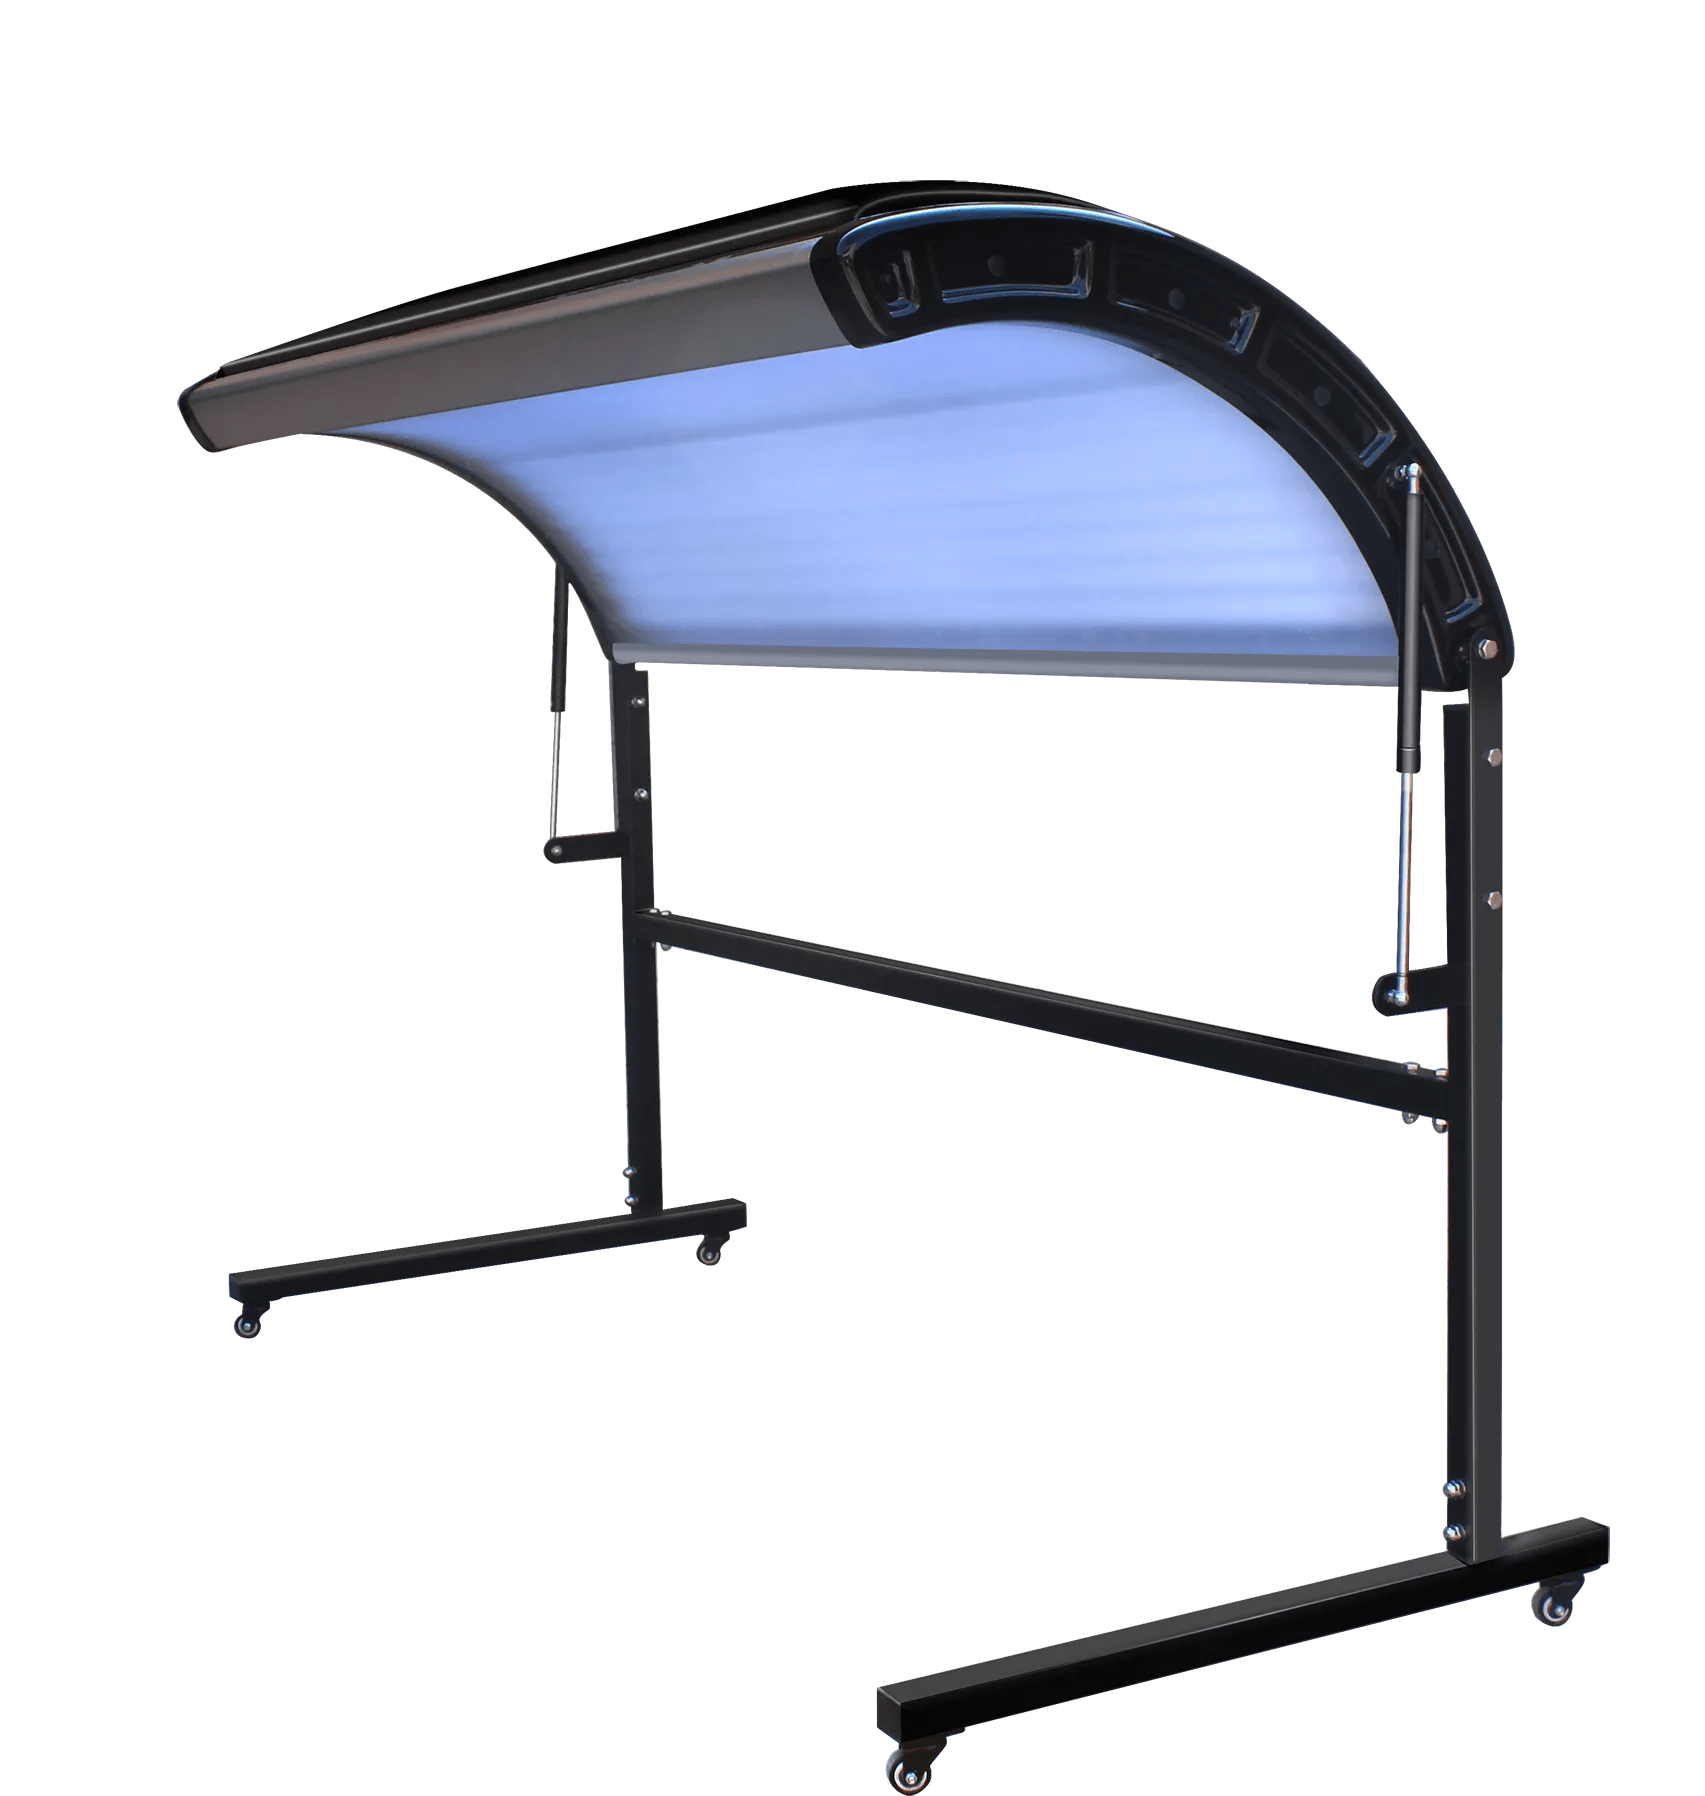 Cheap Price Canopy Tanning Beds For Sale Home Tanning Bed Buy Canopy Tanning Beds Tanning Beds For Sale Home Tanning Bed Product On Alibaba Com